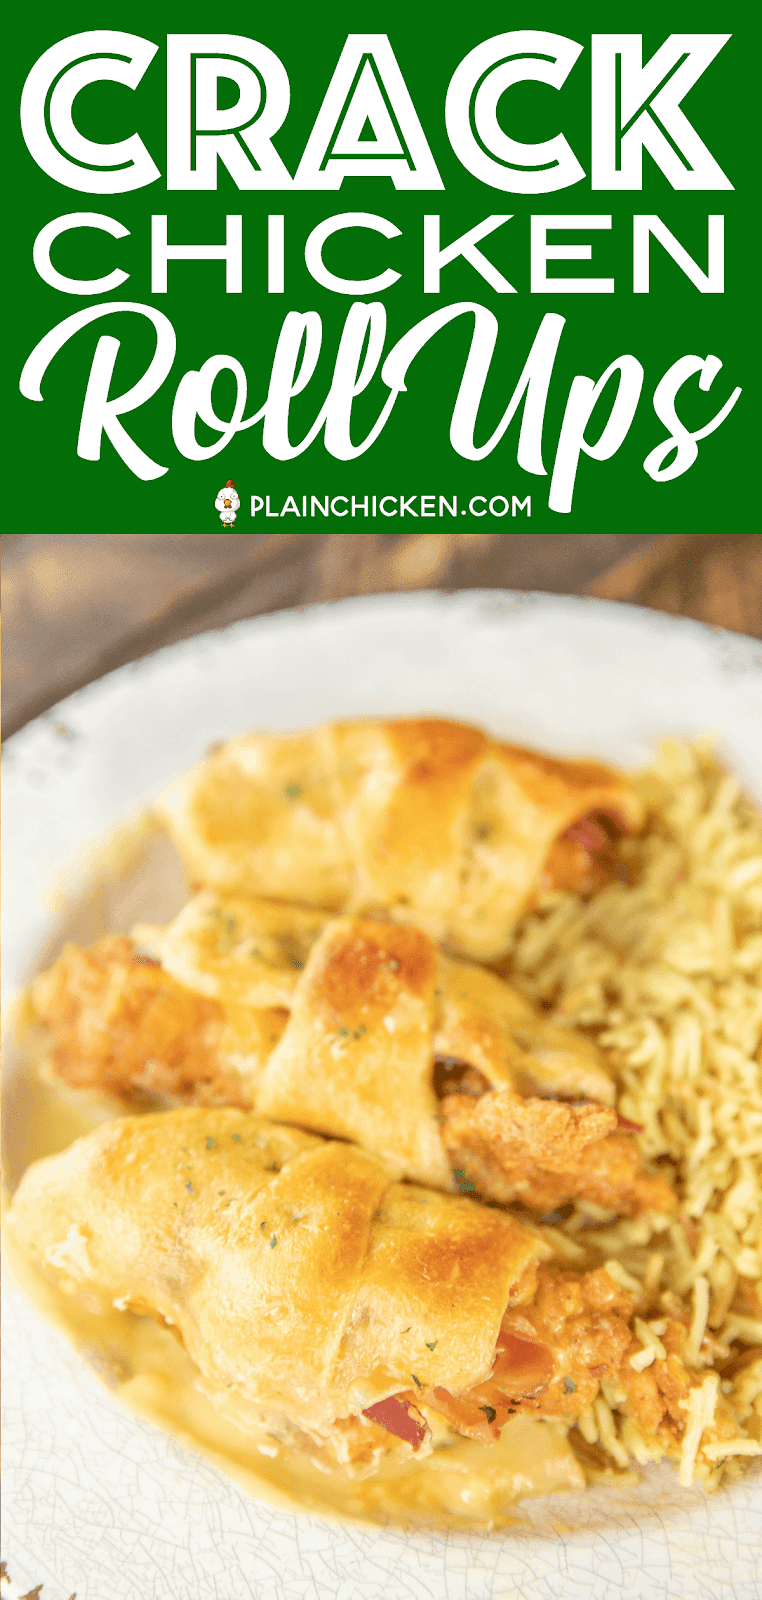 Crack Chicken Roll Ups - our favorite weeknight meal!! Frozen chicken fingers, cheddar cheese, bacon and ranch wrapped in crescent rolls and topped with cream of chicken soup and milk. Seriously delicious!! I always have to double the recipe for my family. We never have any leftovers! #chicken #casserole #chickencasserole #weeknightdinner #easychickenrecipe